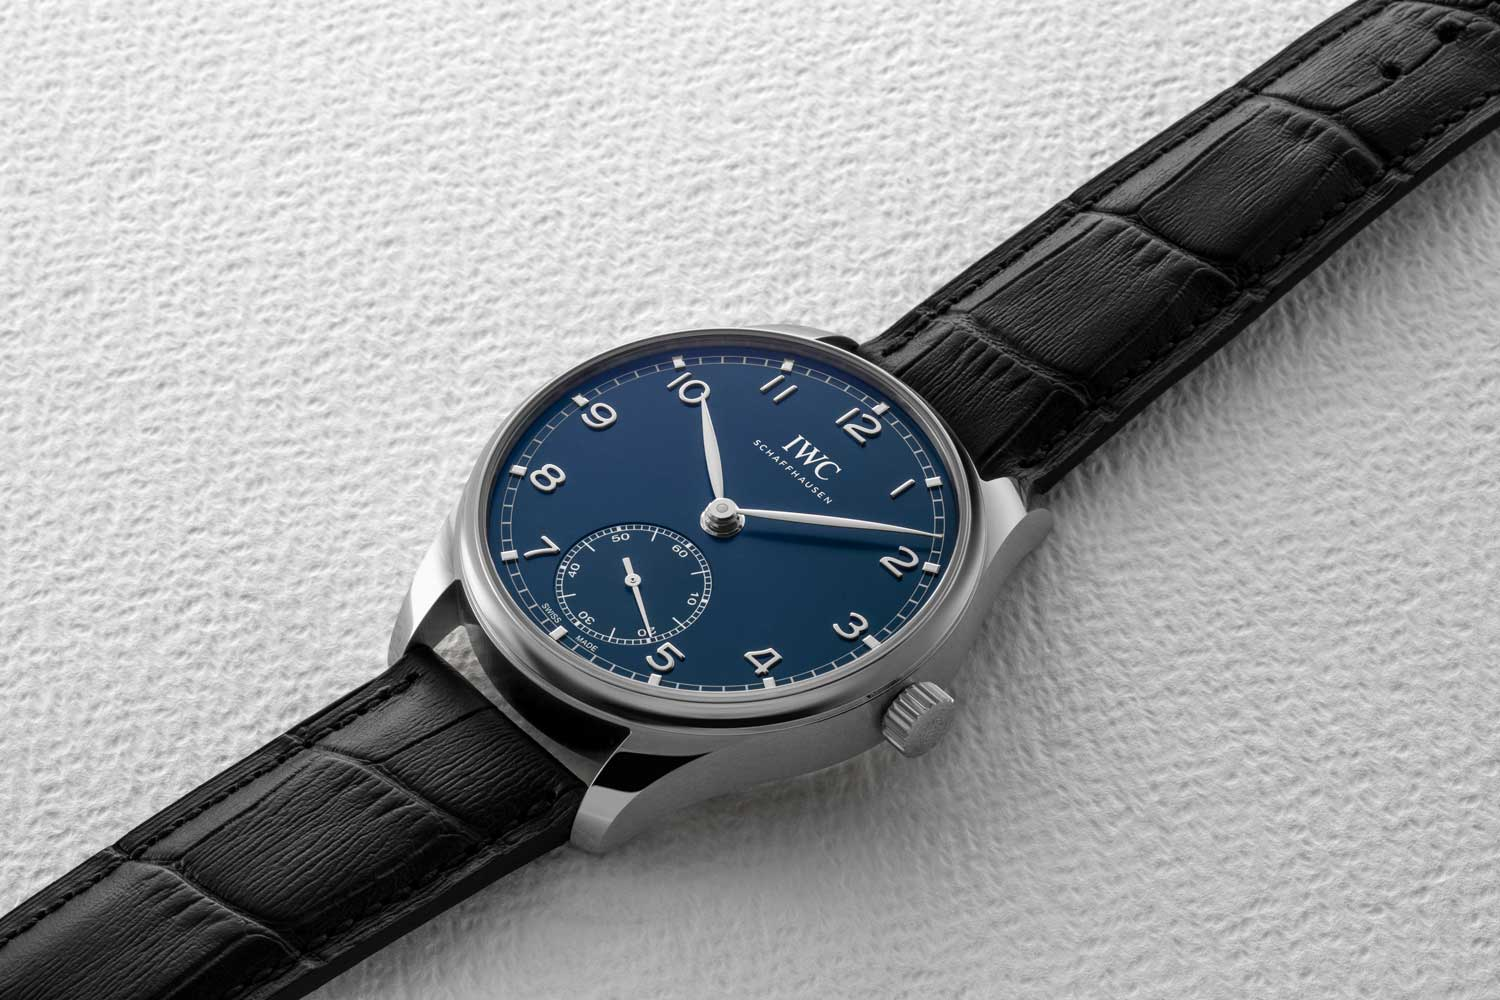 Portugieser Automatic Ref. IW358305 (Image © Revolution)